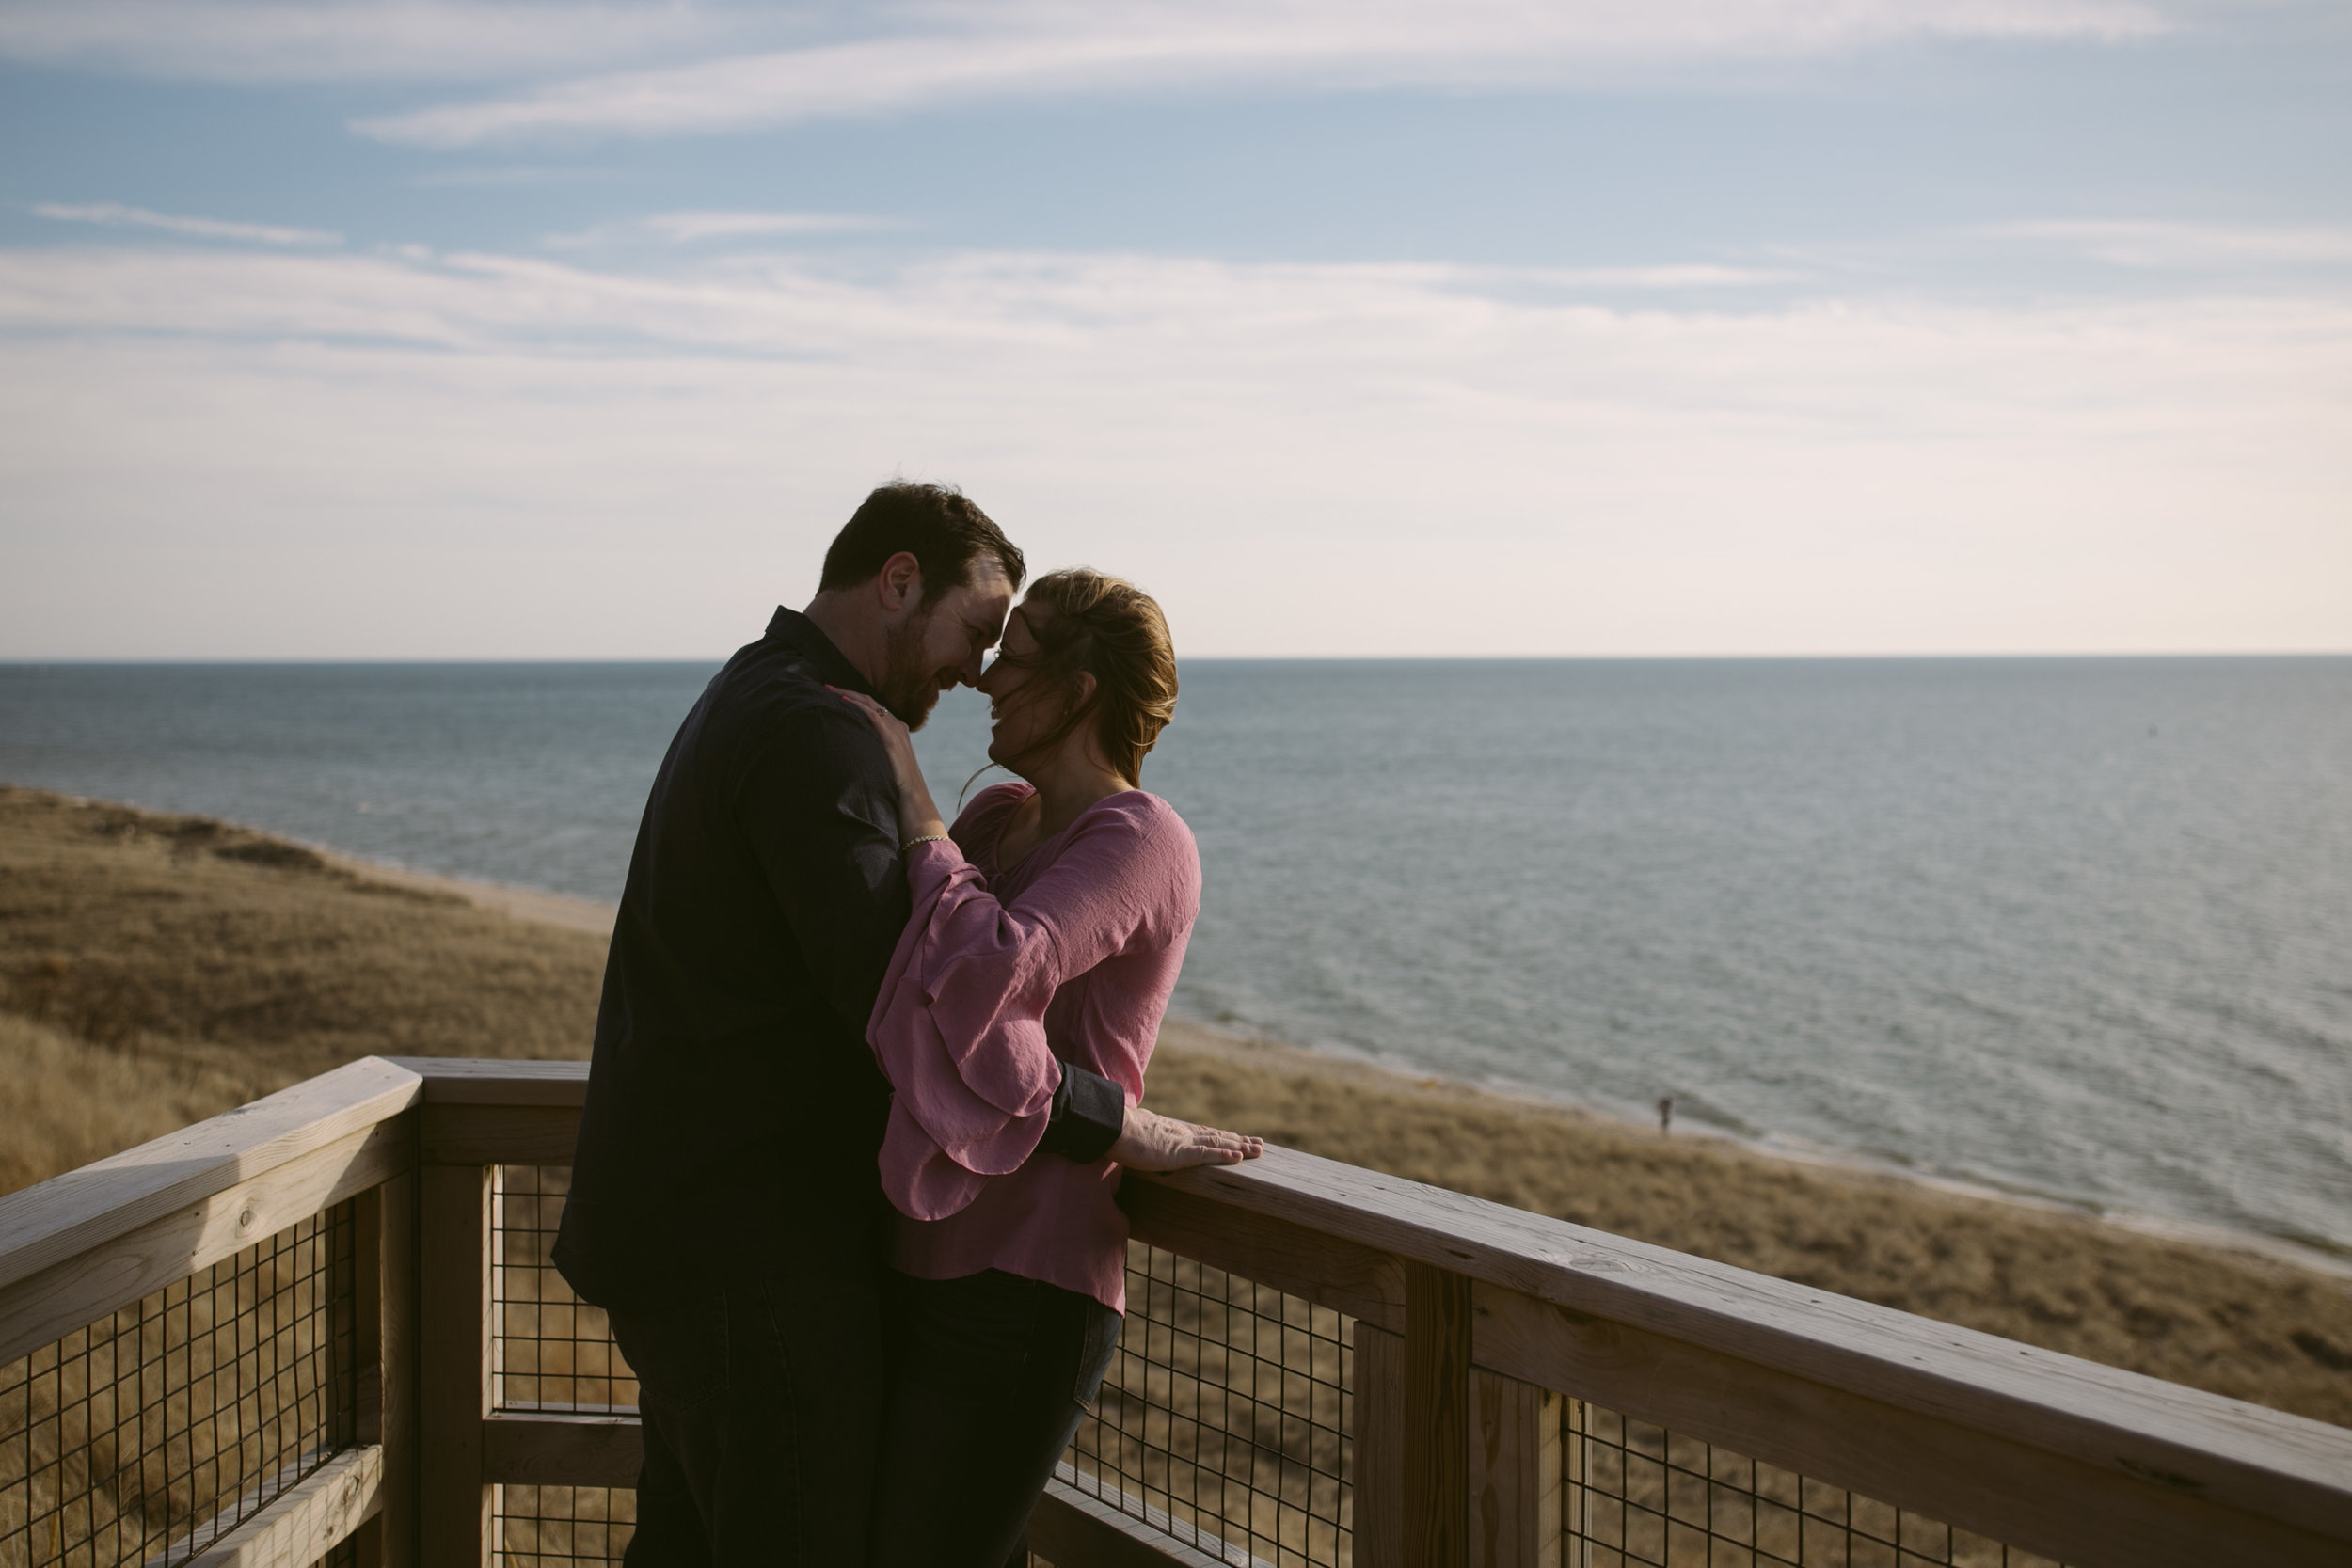 grandrapidsphotographer_hollandmichigan_hollandphotographer_lakemichigan_beachwedding_grandrapids_engaged_jessicadarling_jdarlingphoto_beachengagement019.jpg